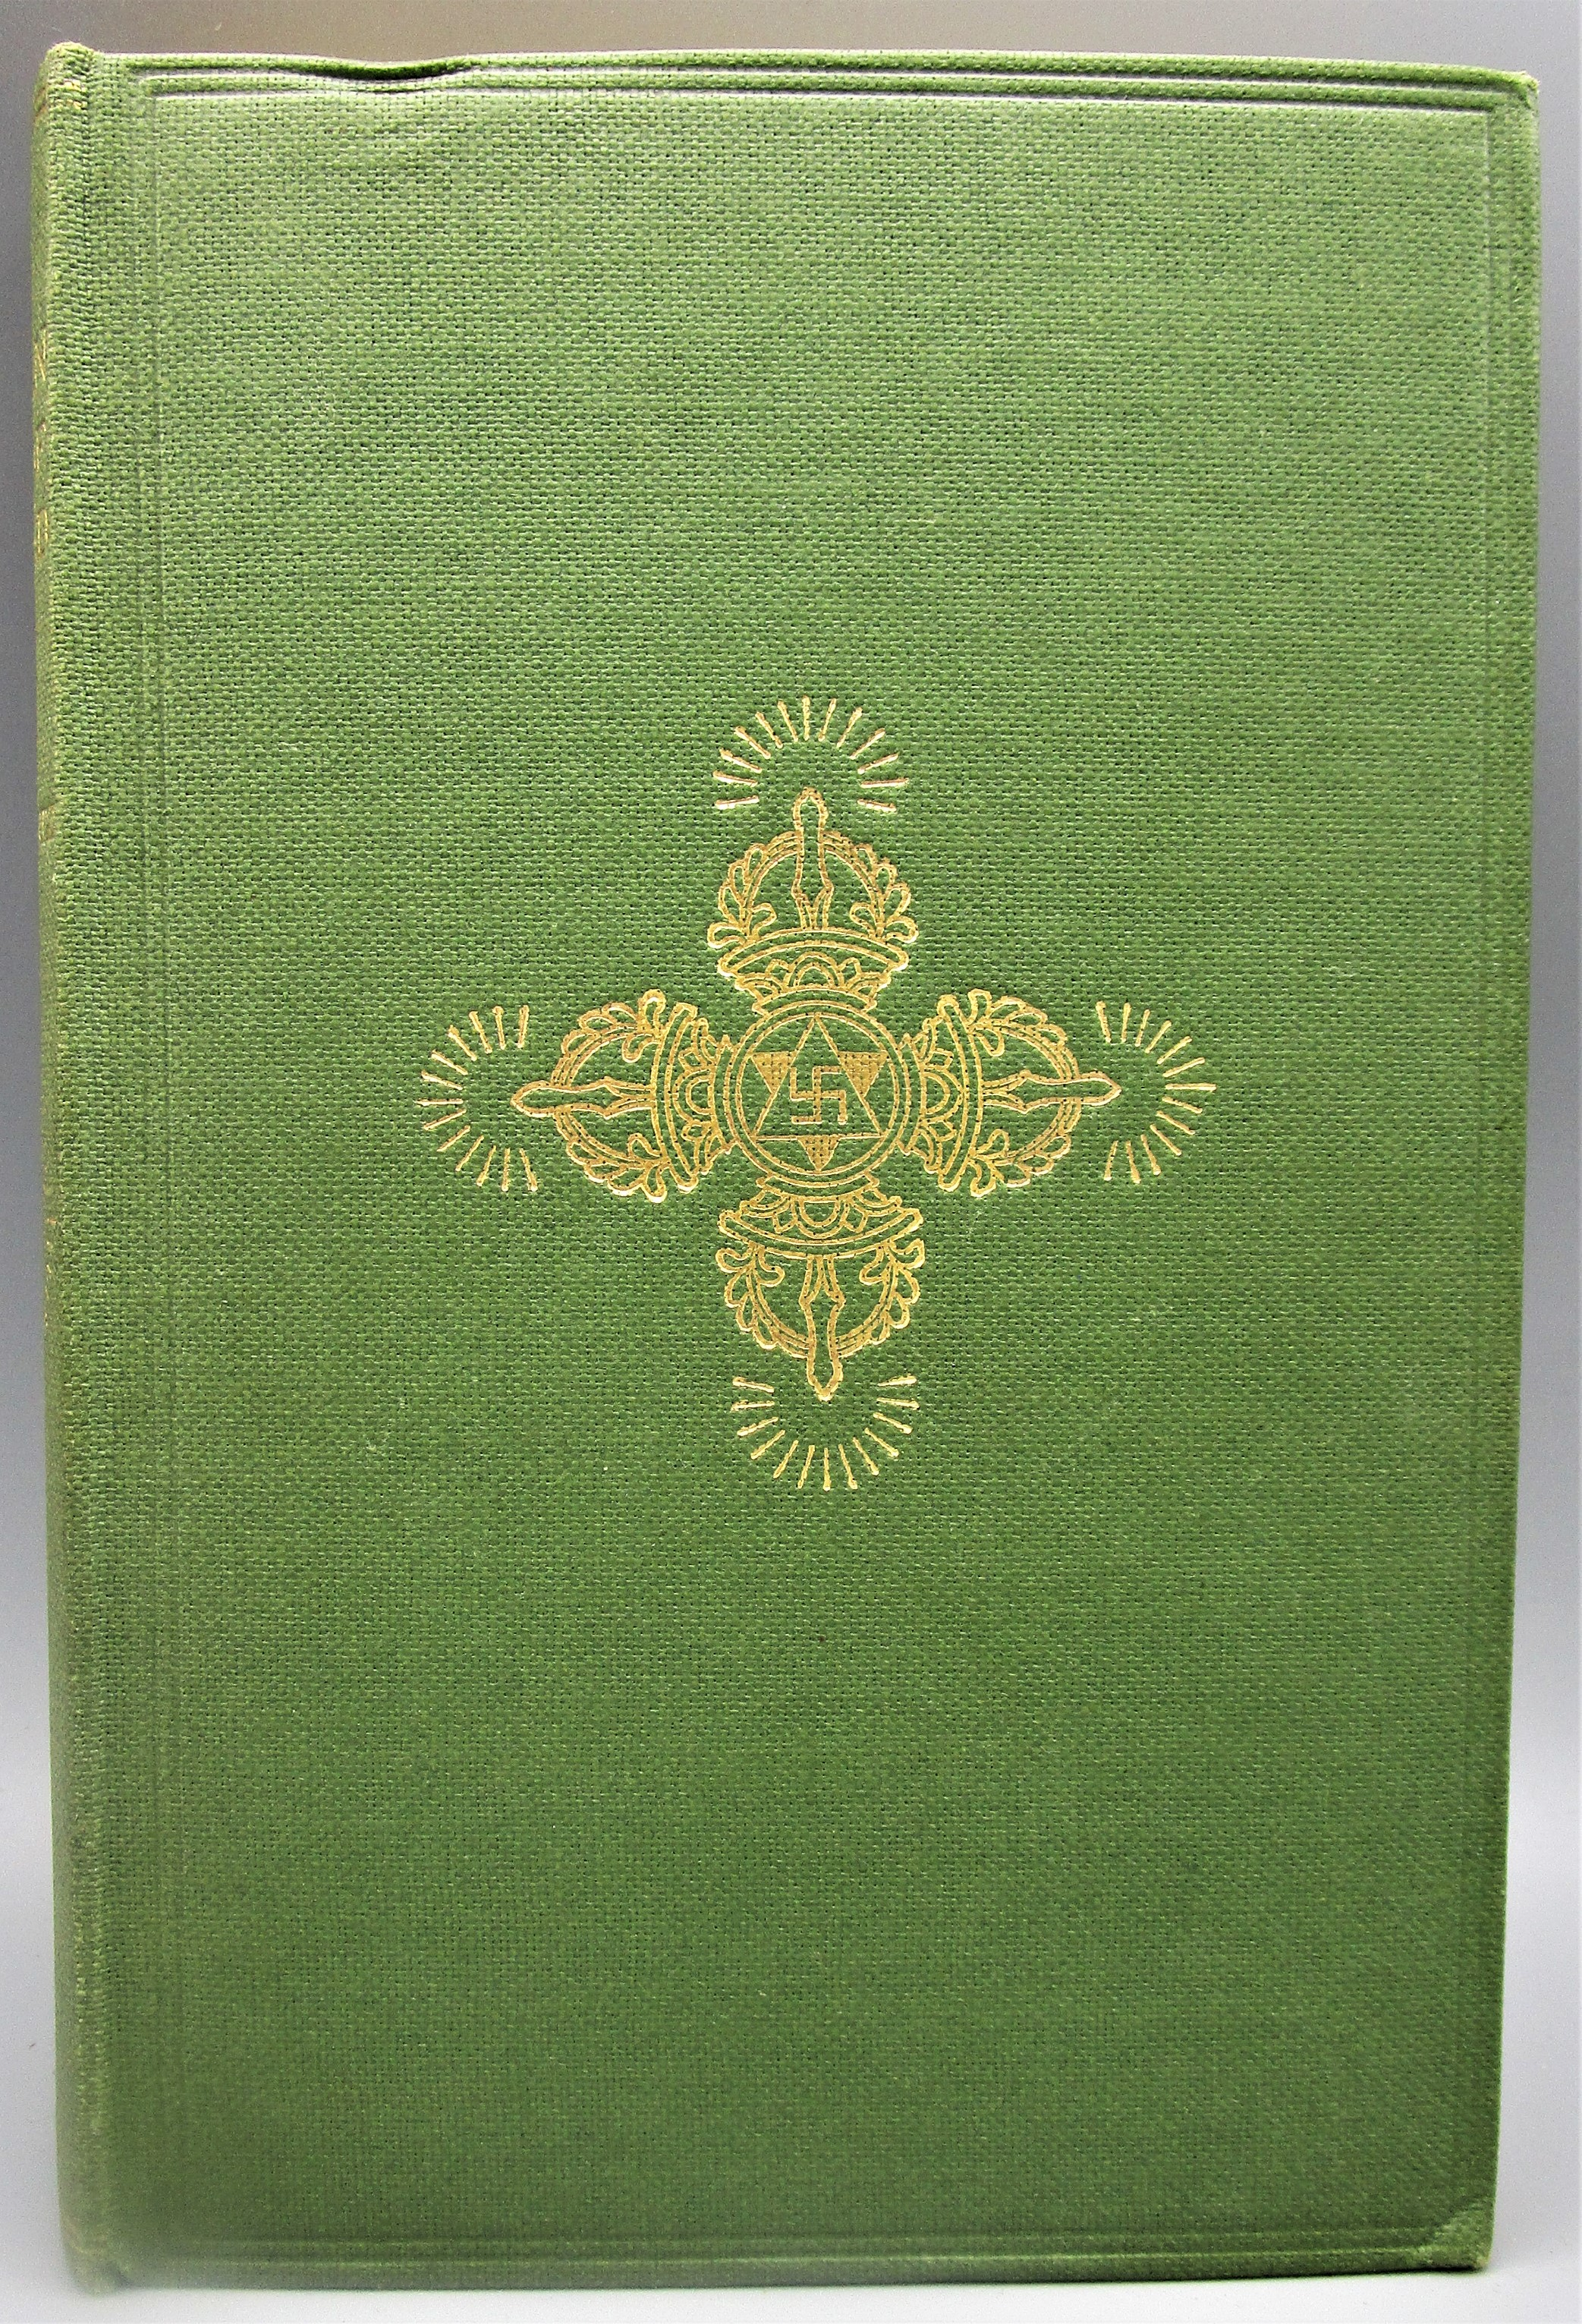 THE TIBETAN BOOK OF THE DEAD, by W. Y. Evans-Wentz - 1927 [1st Ed]